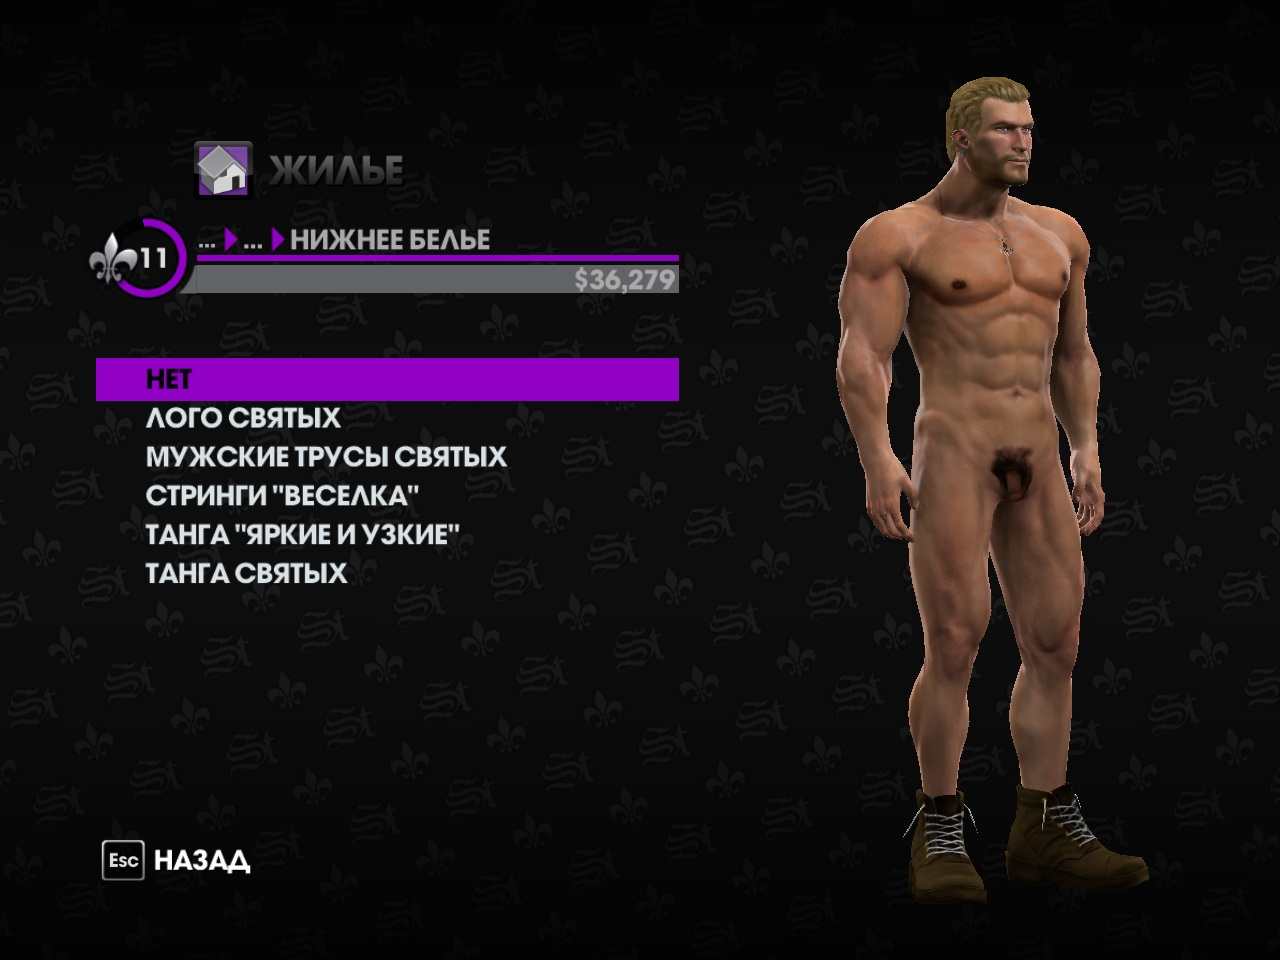 Saints row the third male nude mod sex galleries